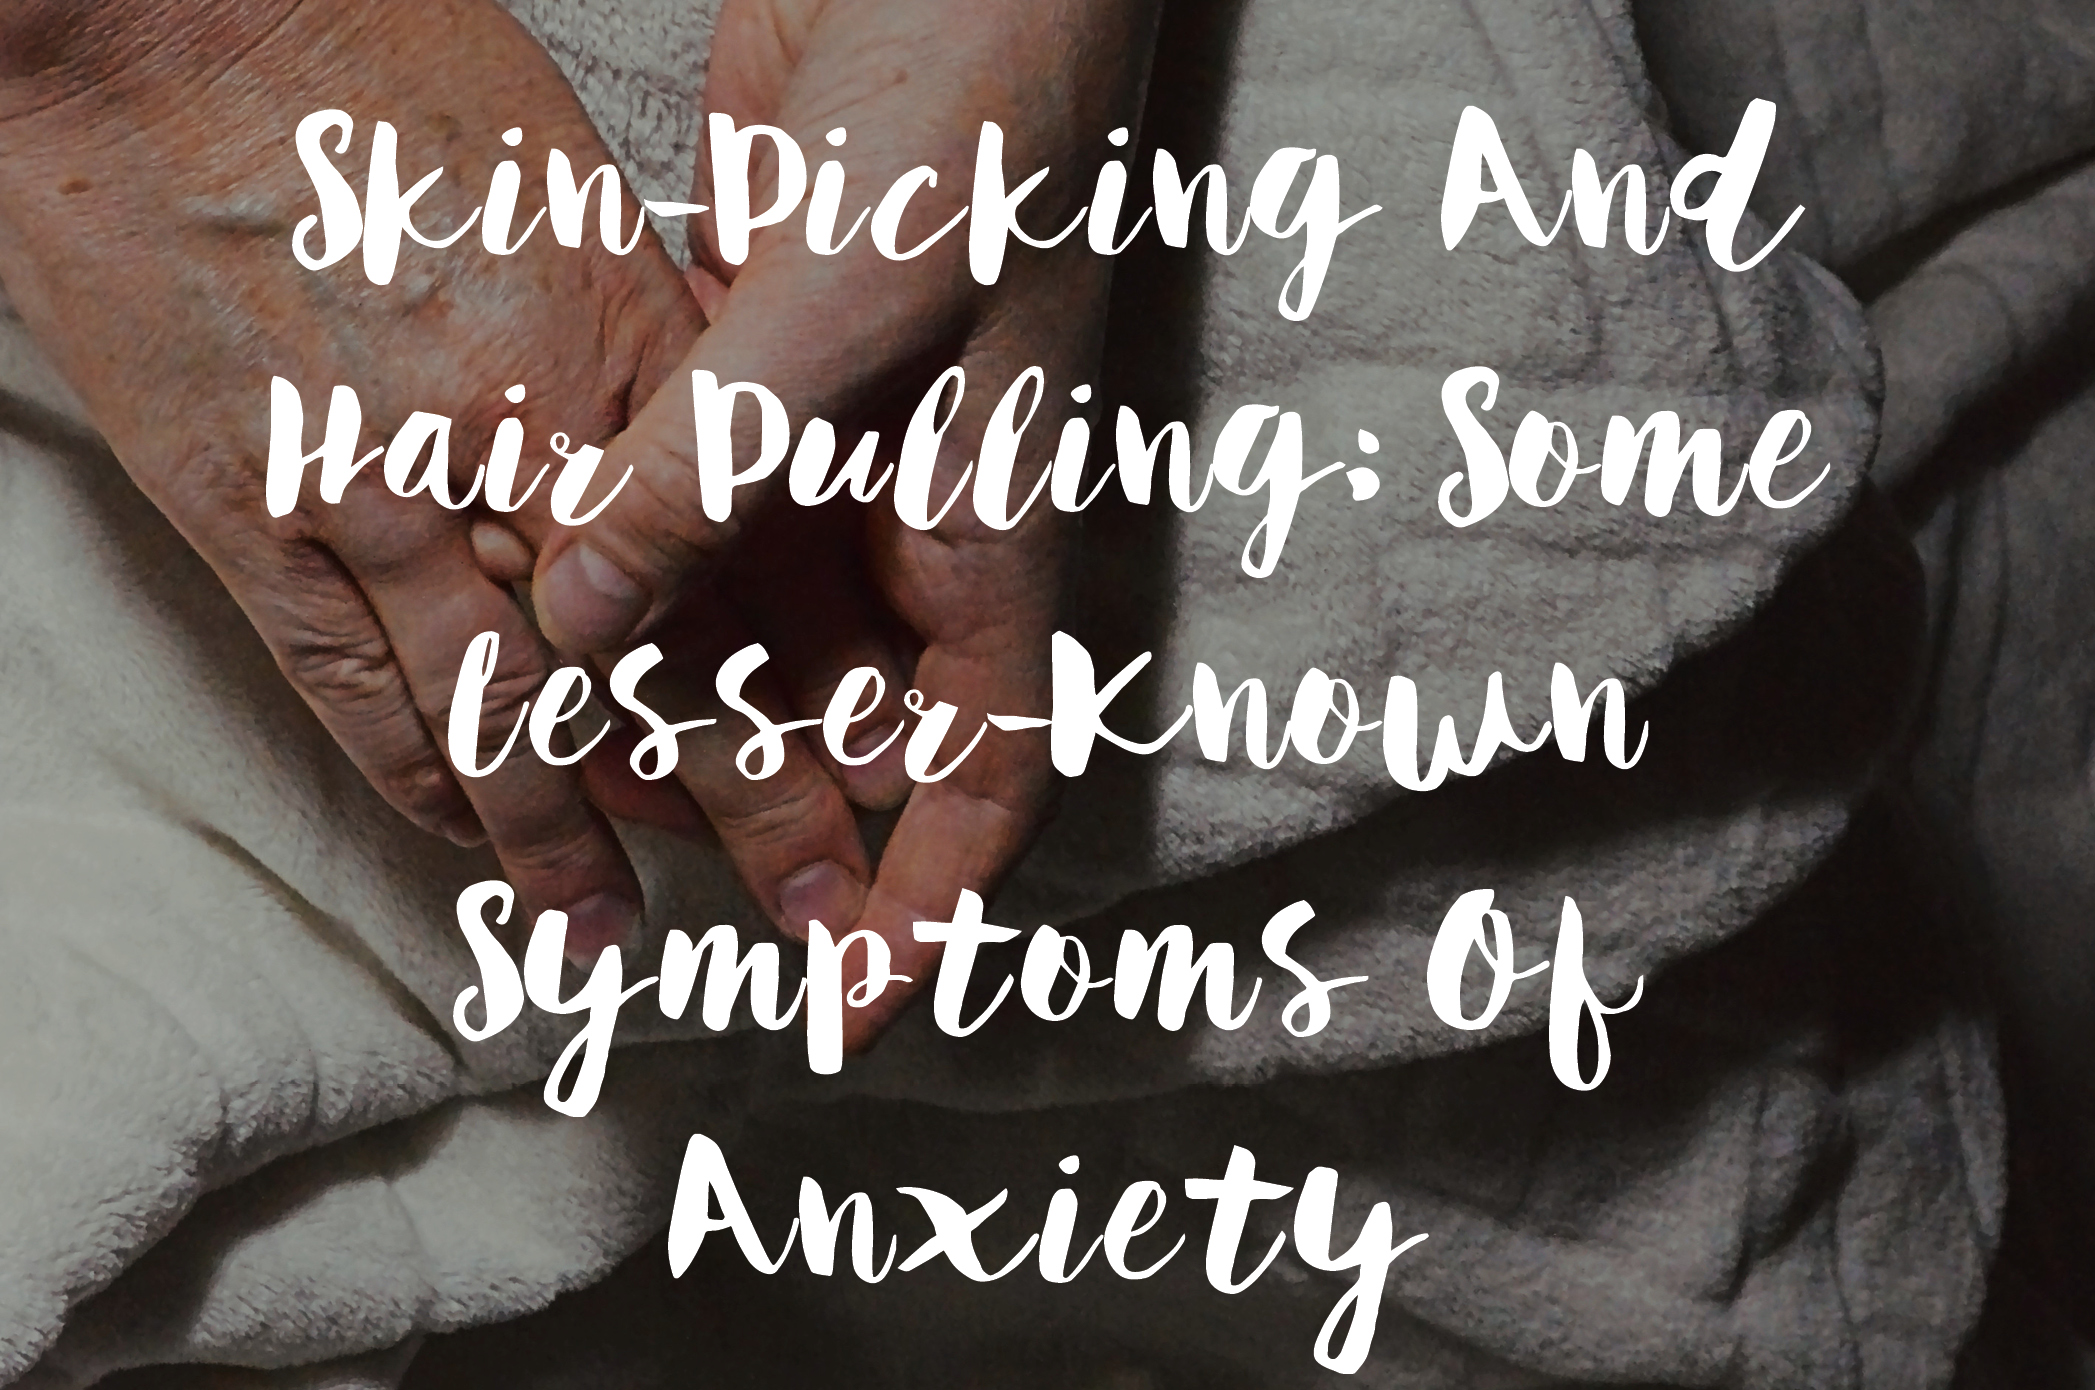 Skin-Picking And Hair Pulling- Some Lesser-Known Symptoms Of Anxiety